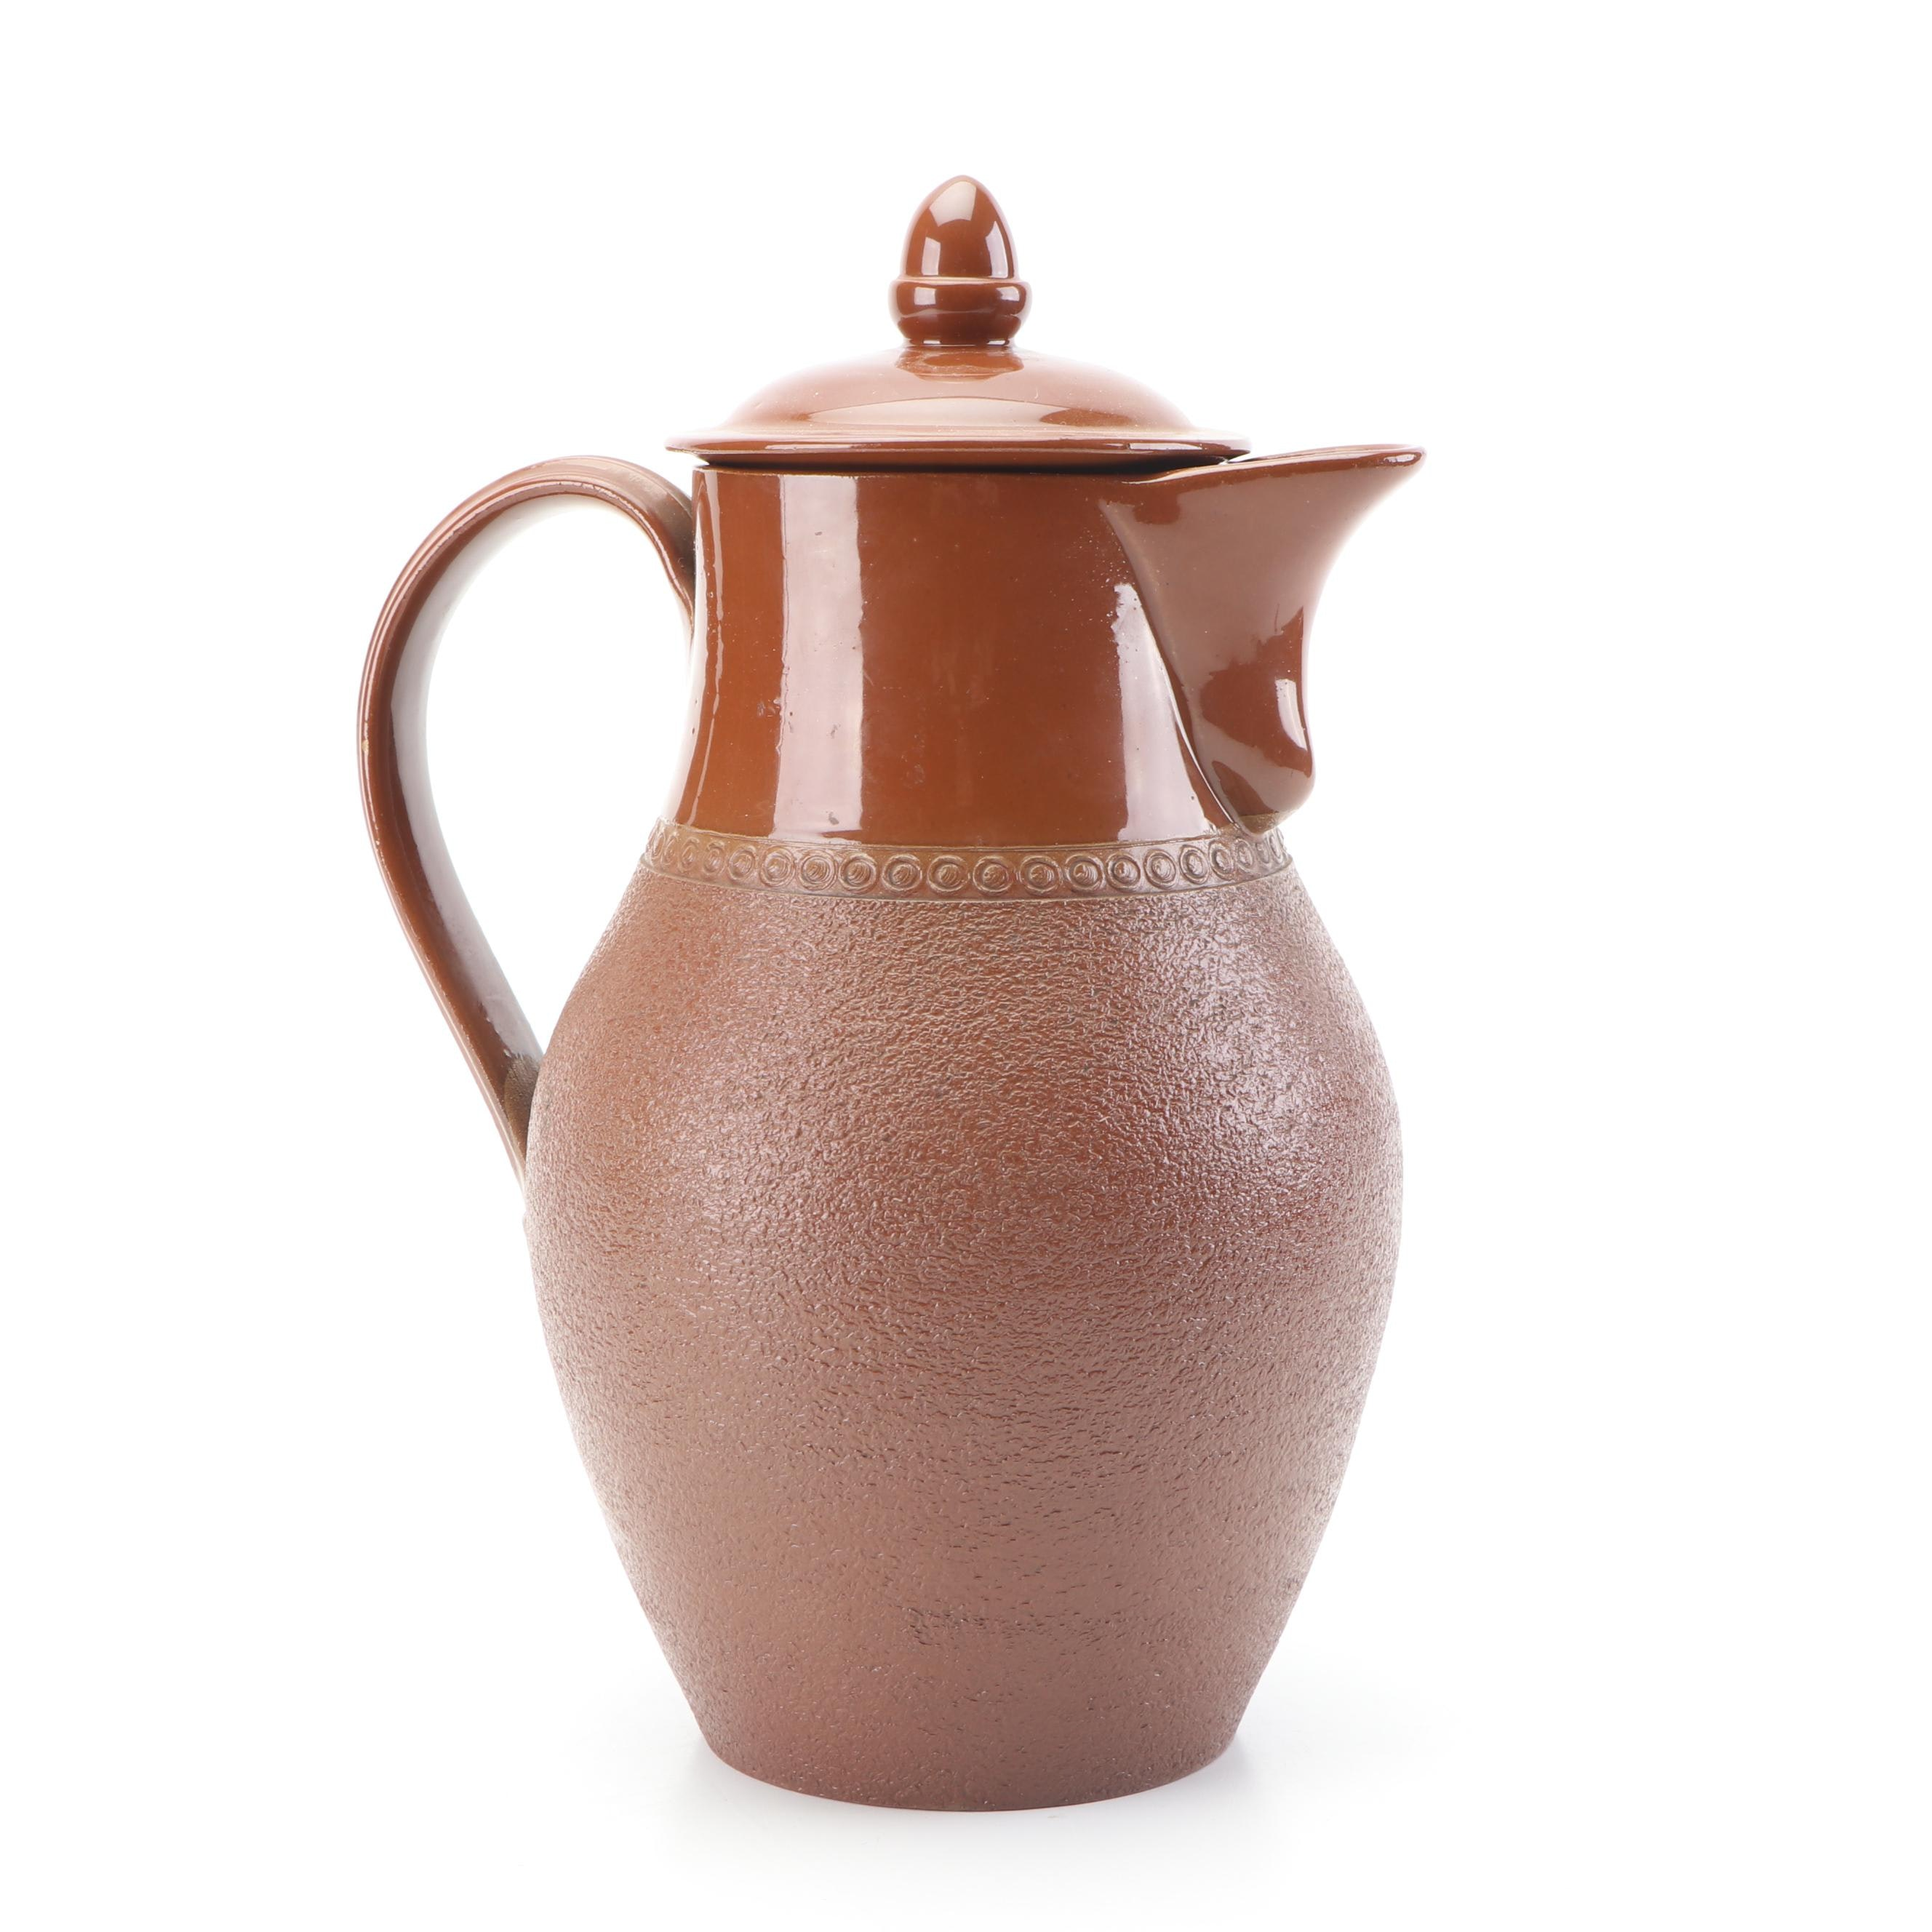 English Redware Pottery Straining Pitcher, Early 20th Century